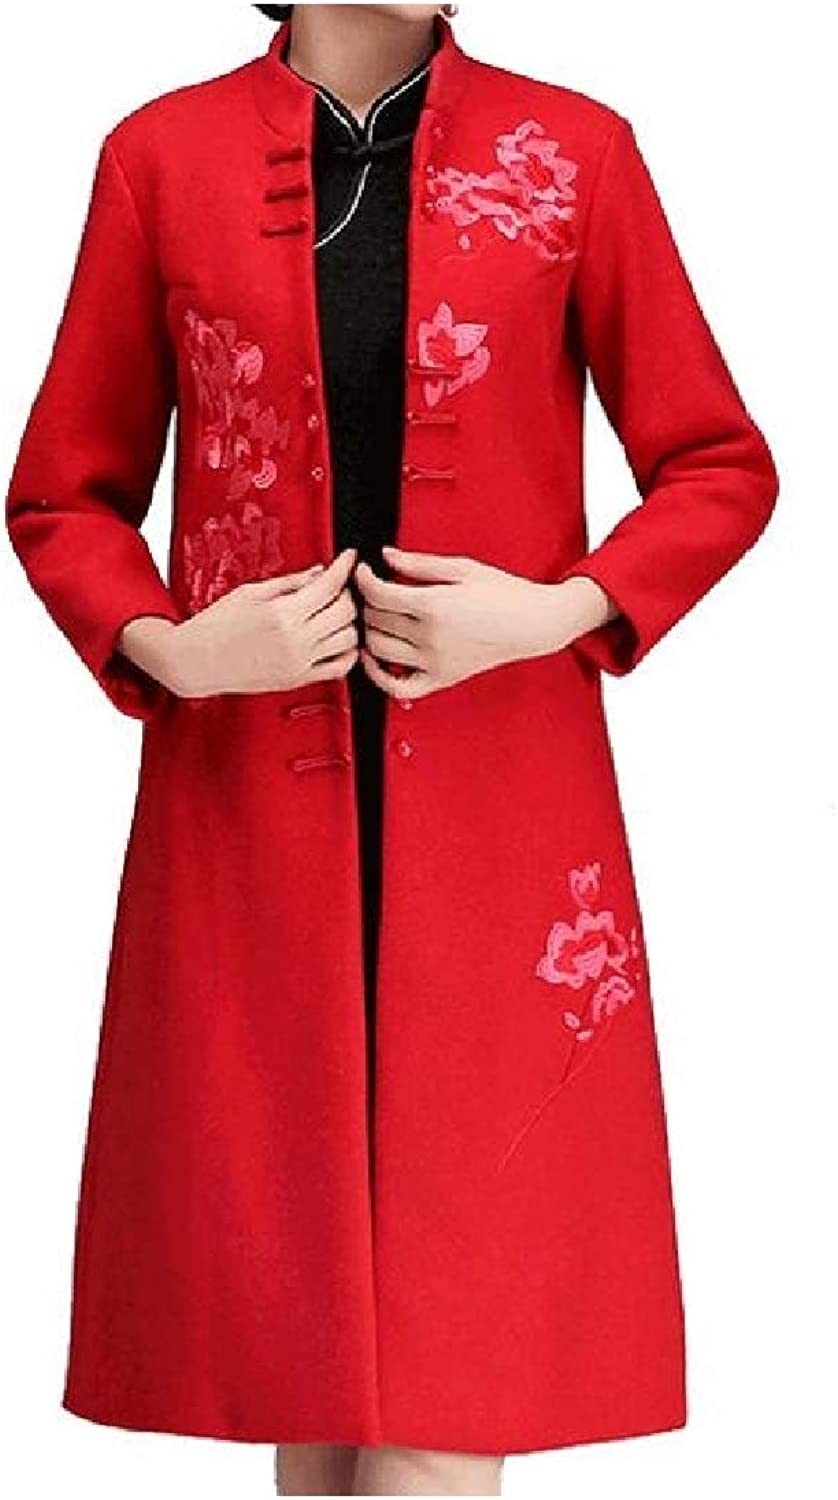 Vska Womens Wool Blend Stand up Collar Floral Embroidery Cheongsam Dust Coat